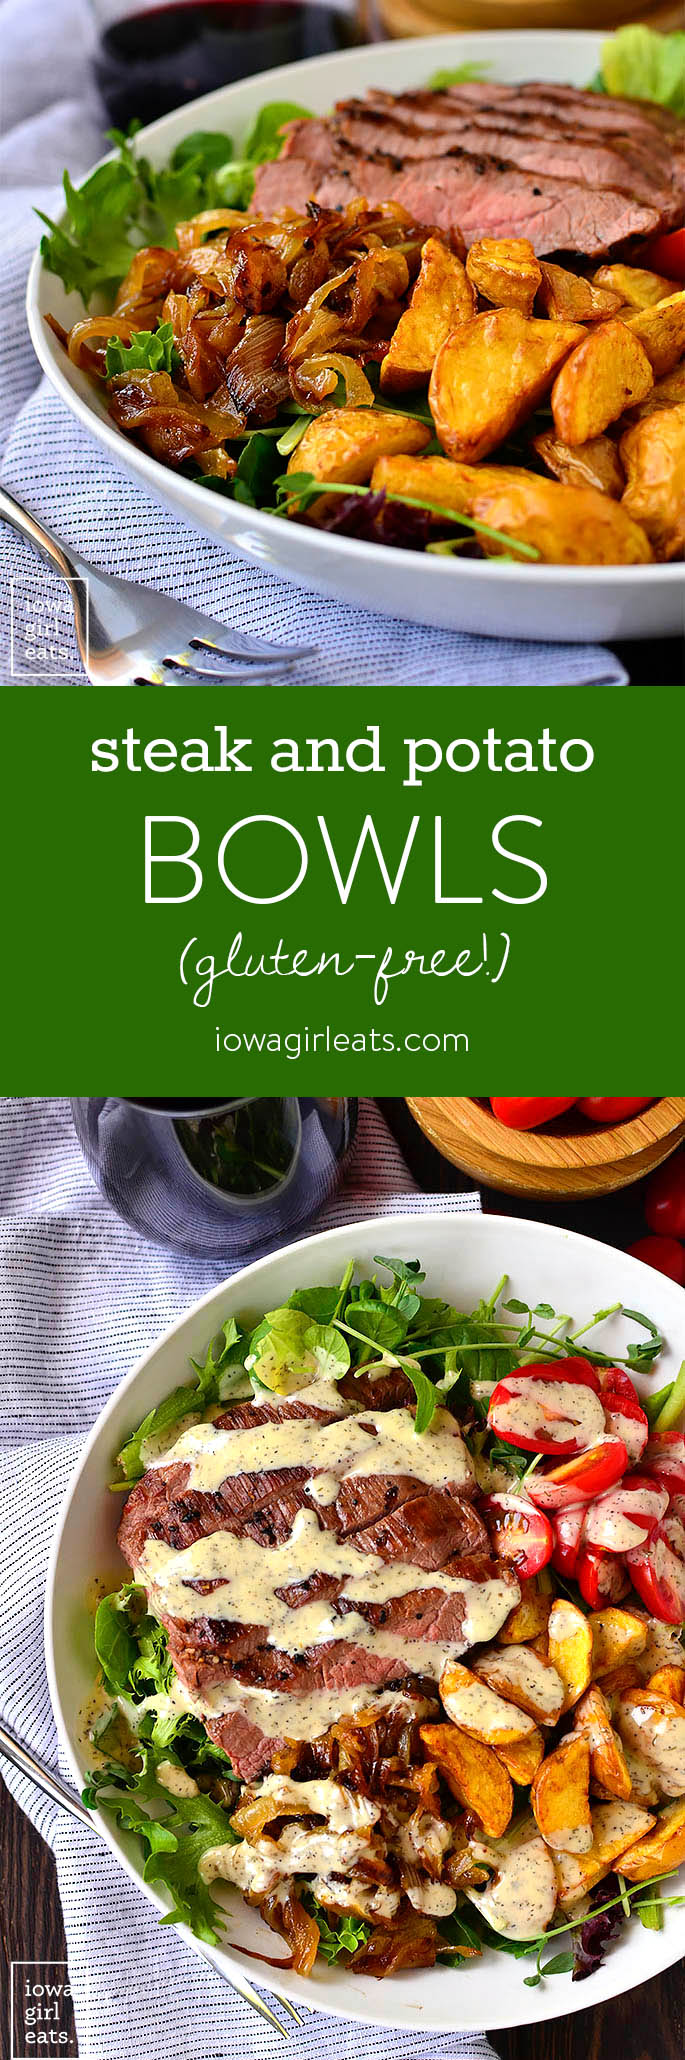 Steak and Potato Bowls are a healthy and hearty grilled gluten-free dinner recipe. Plus I'm sharing my favorite method for grilling juicy, tender steaks! | iowagirleats.com